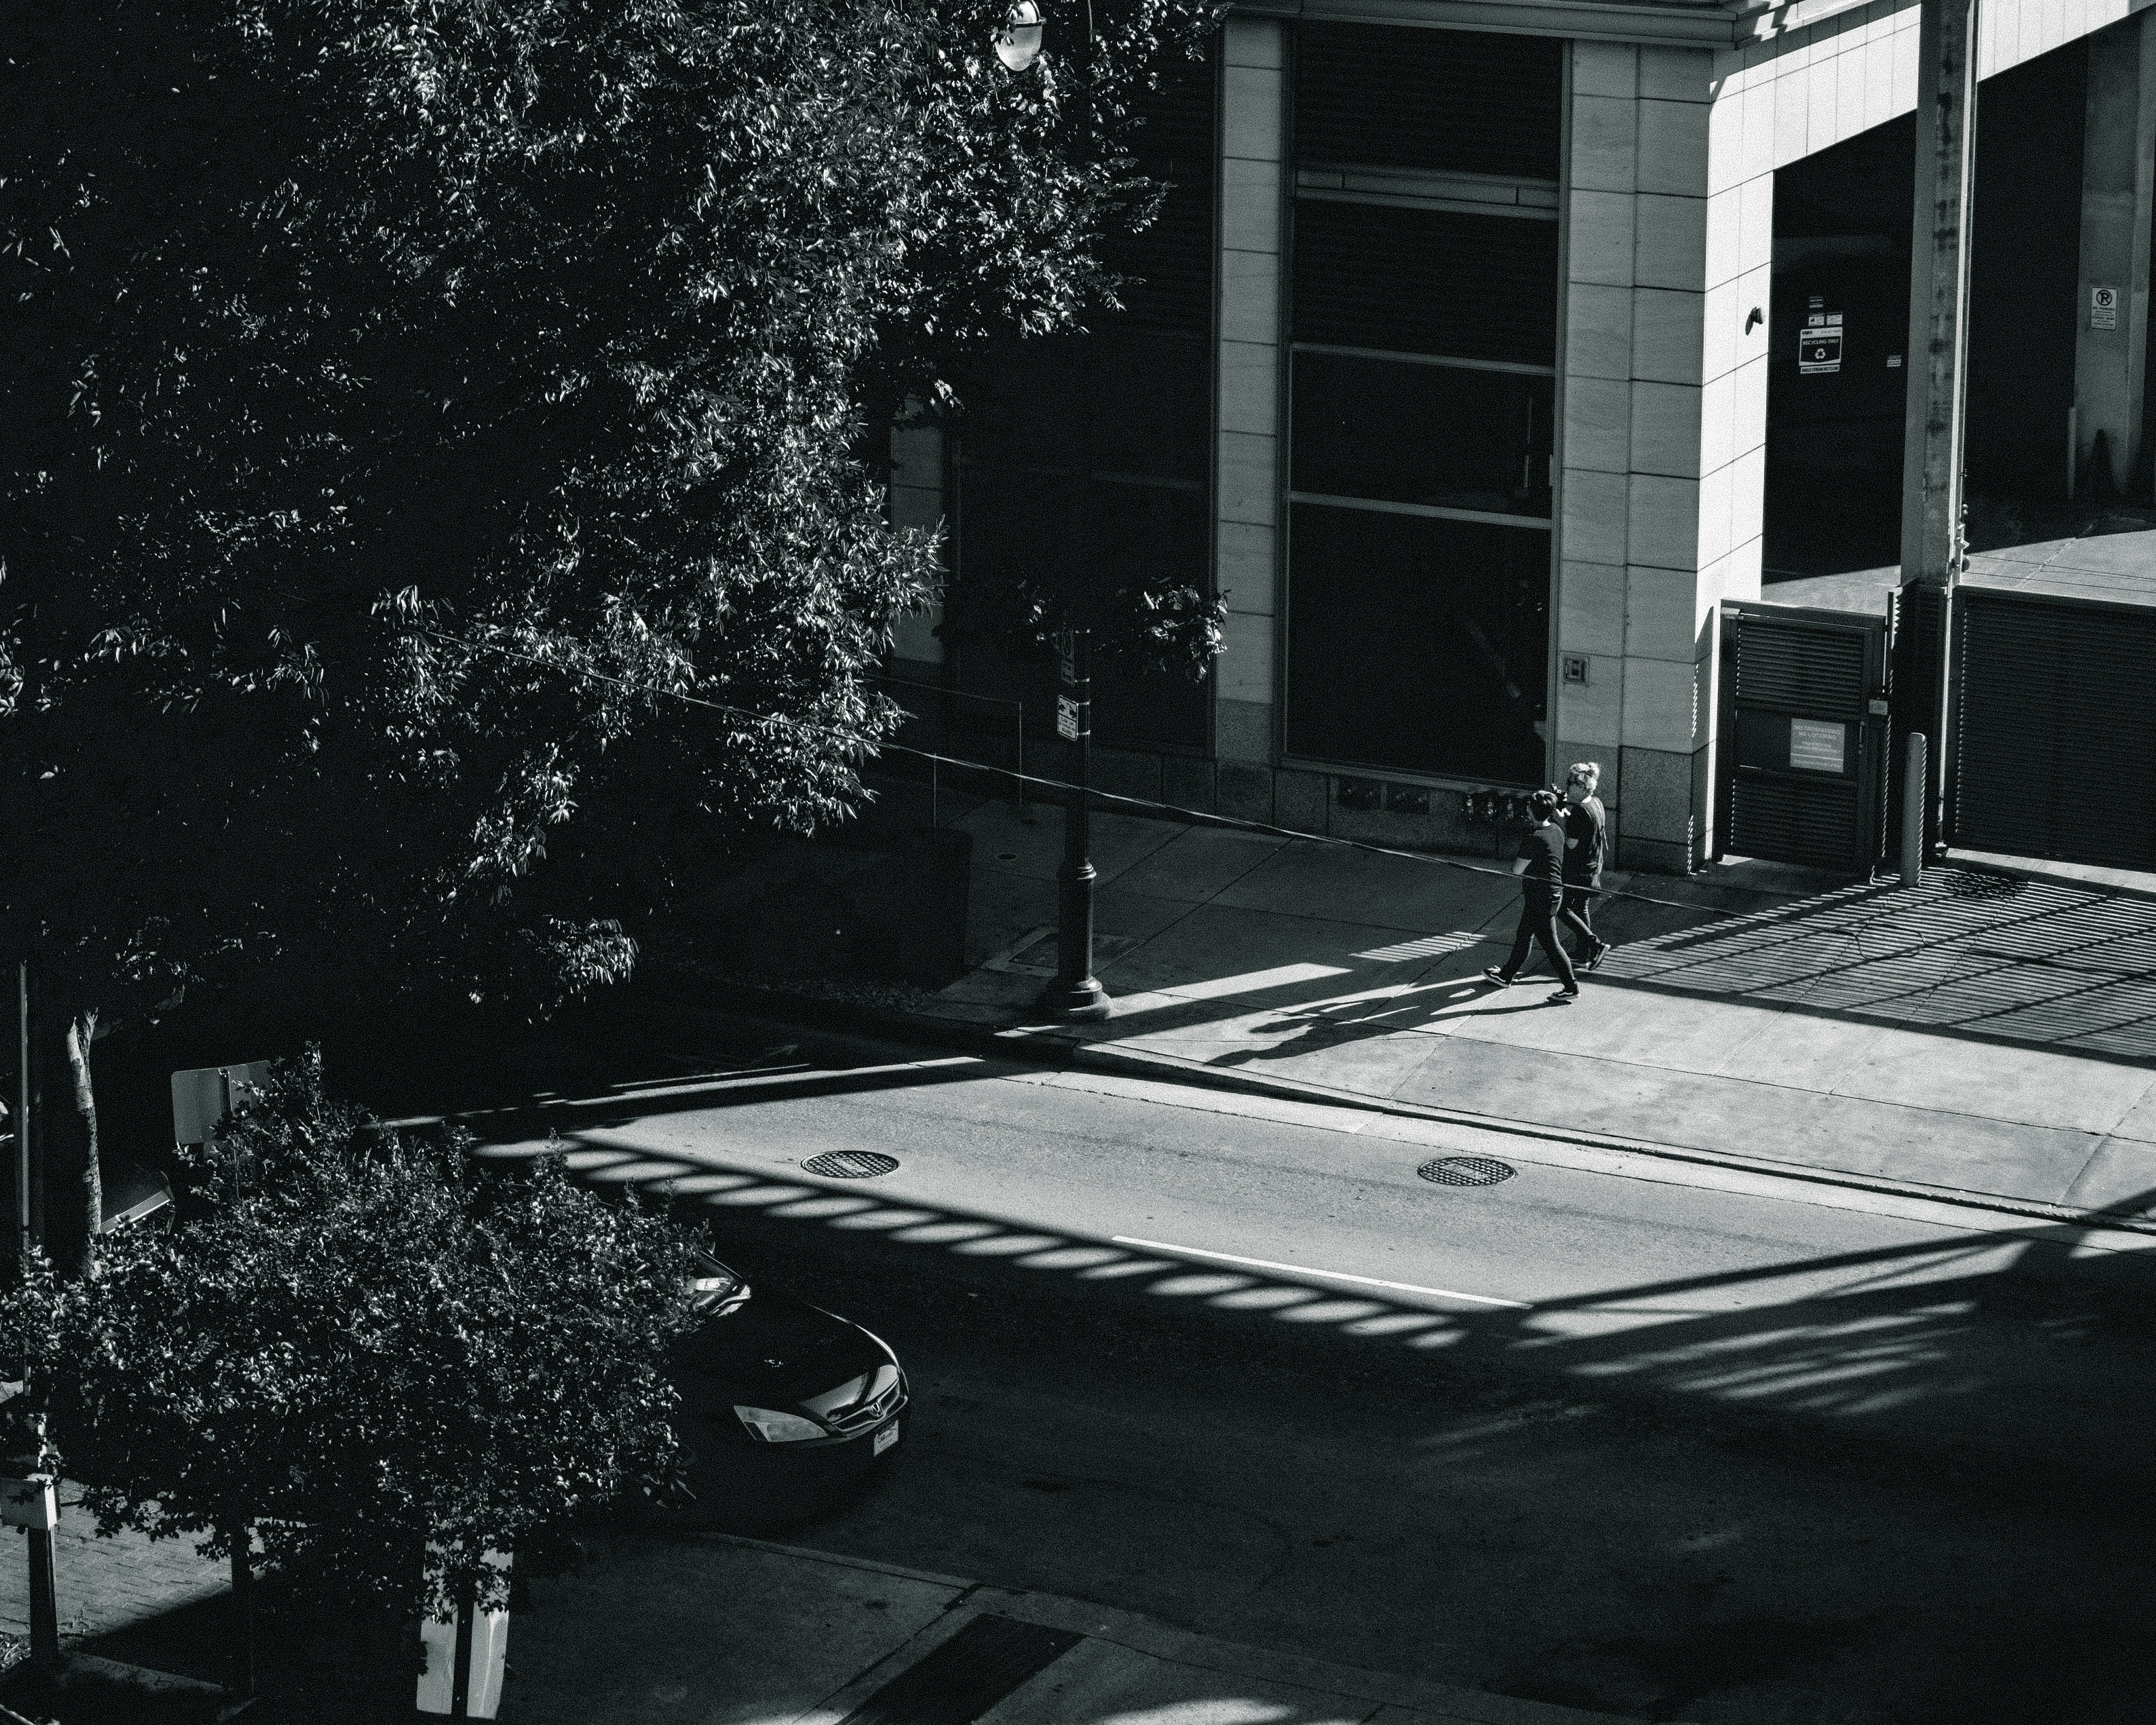 grayscale photo of people walking on road